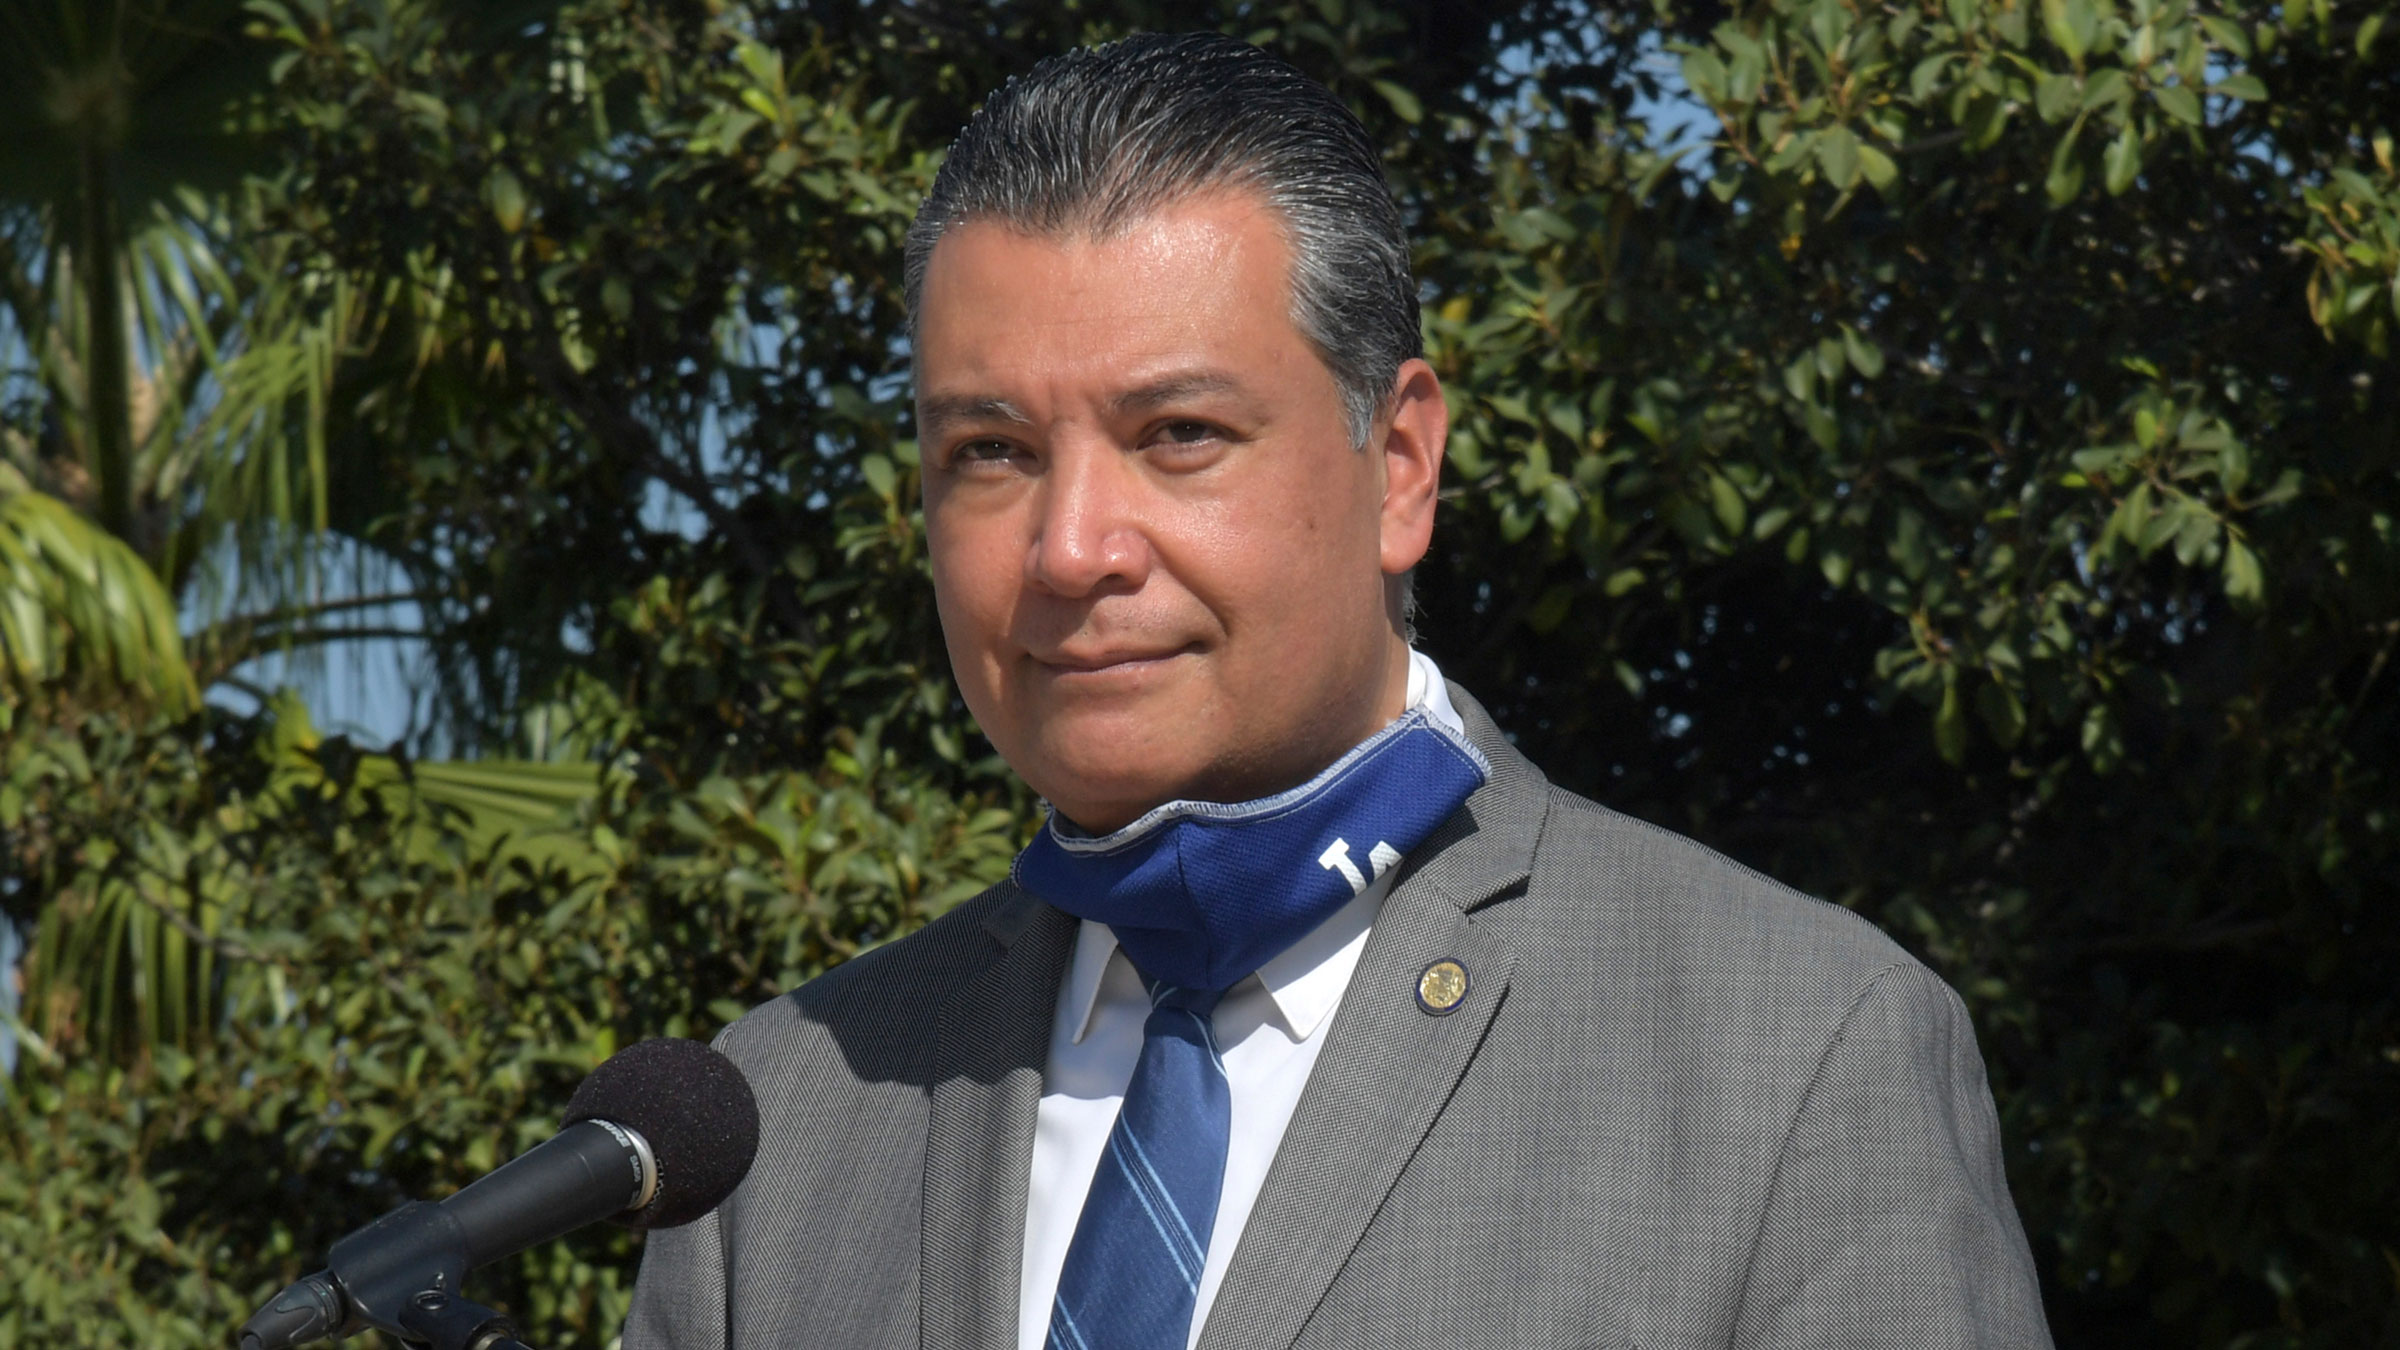 California Secretary of State Alex Padilla speaks during a news conference in September.